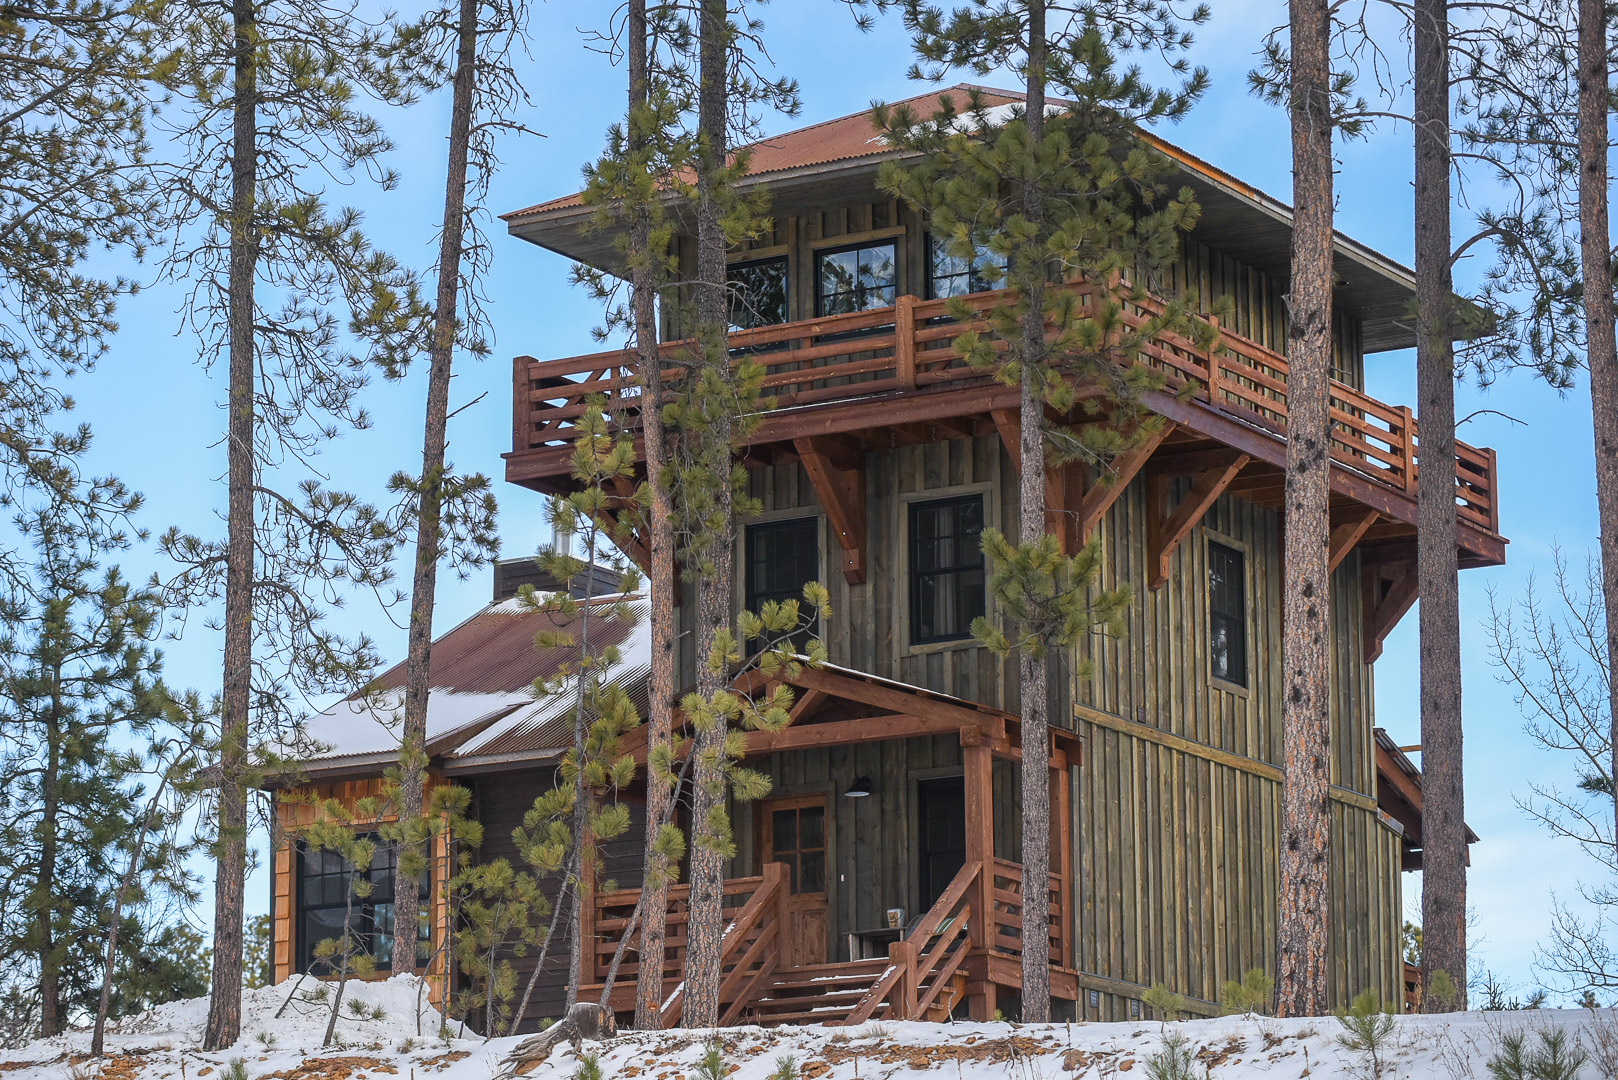 Lookout tower black hills adventure lodging for Lookout tower house